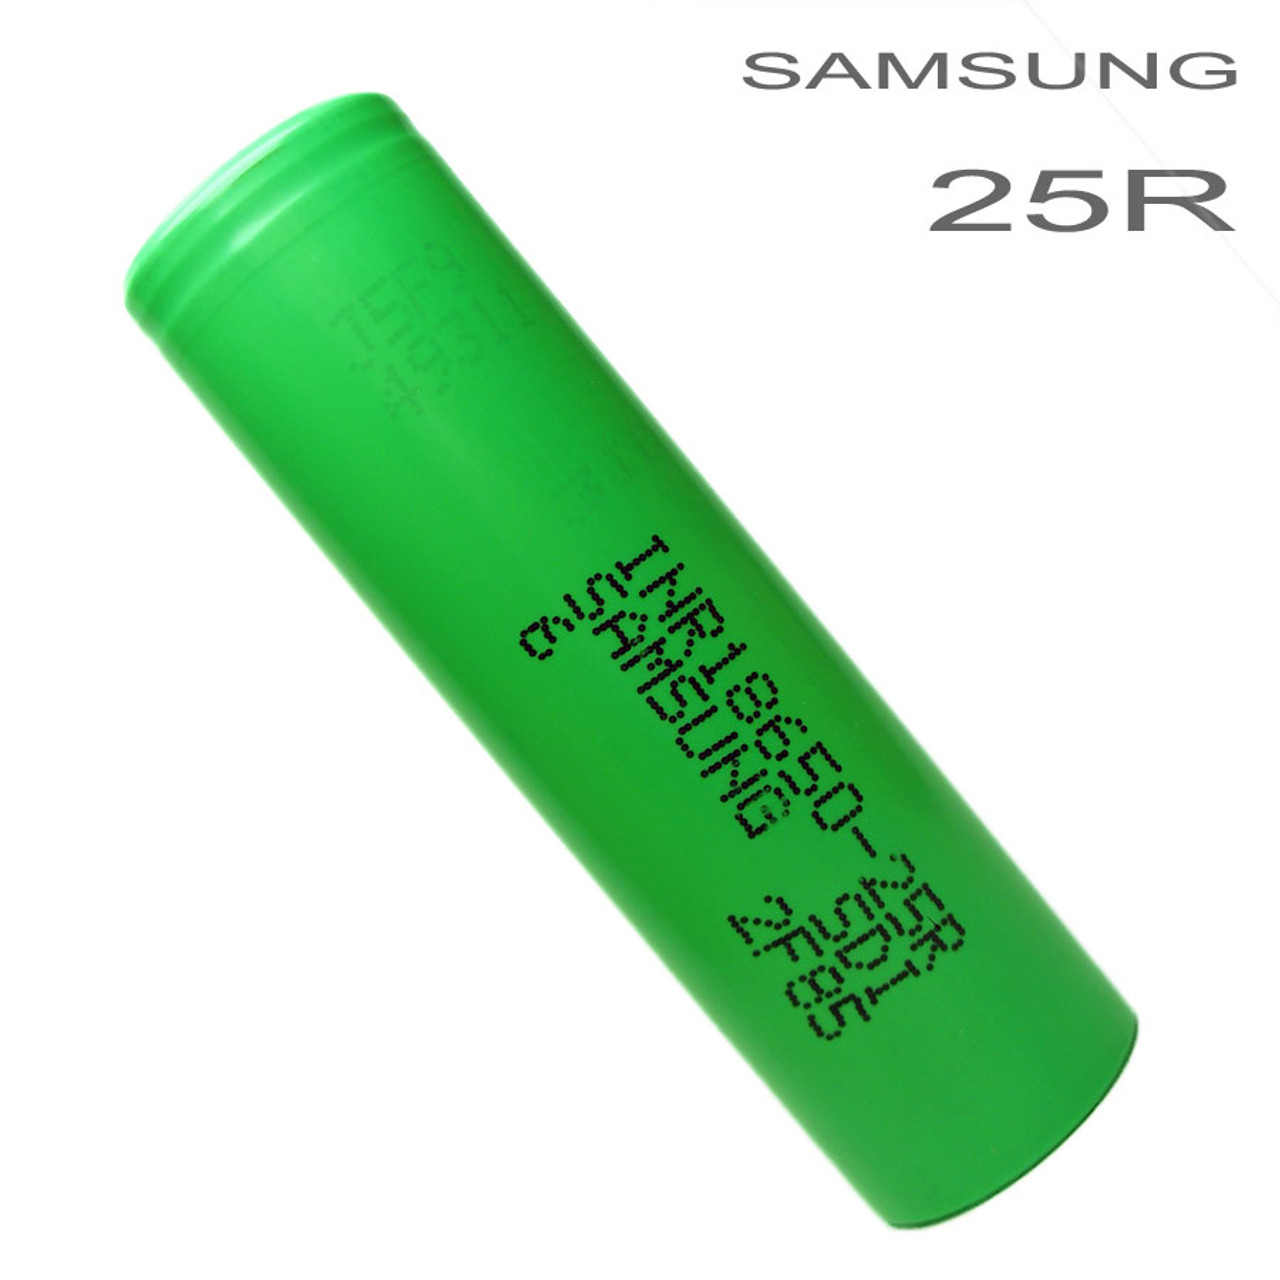 samsung 25r 4 50 samsung 25r 18650 2500mah high current discharge battery flat top